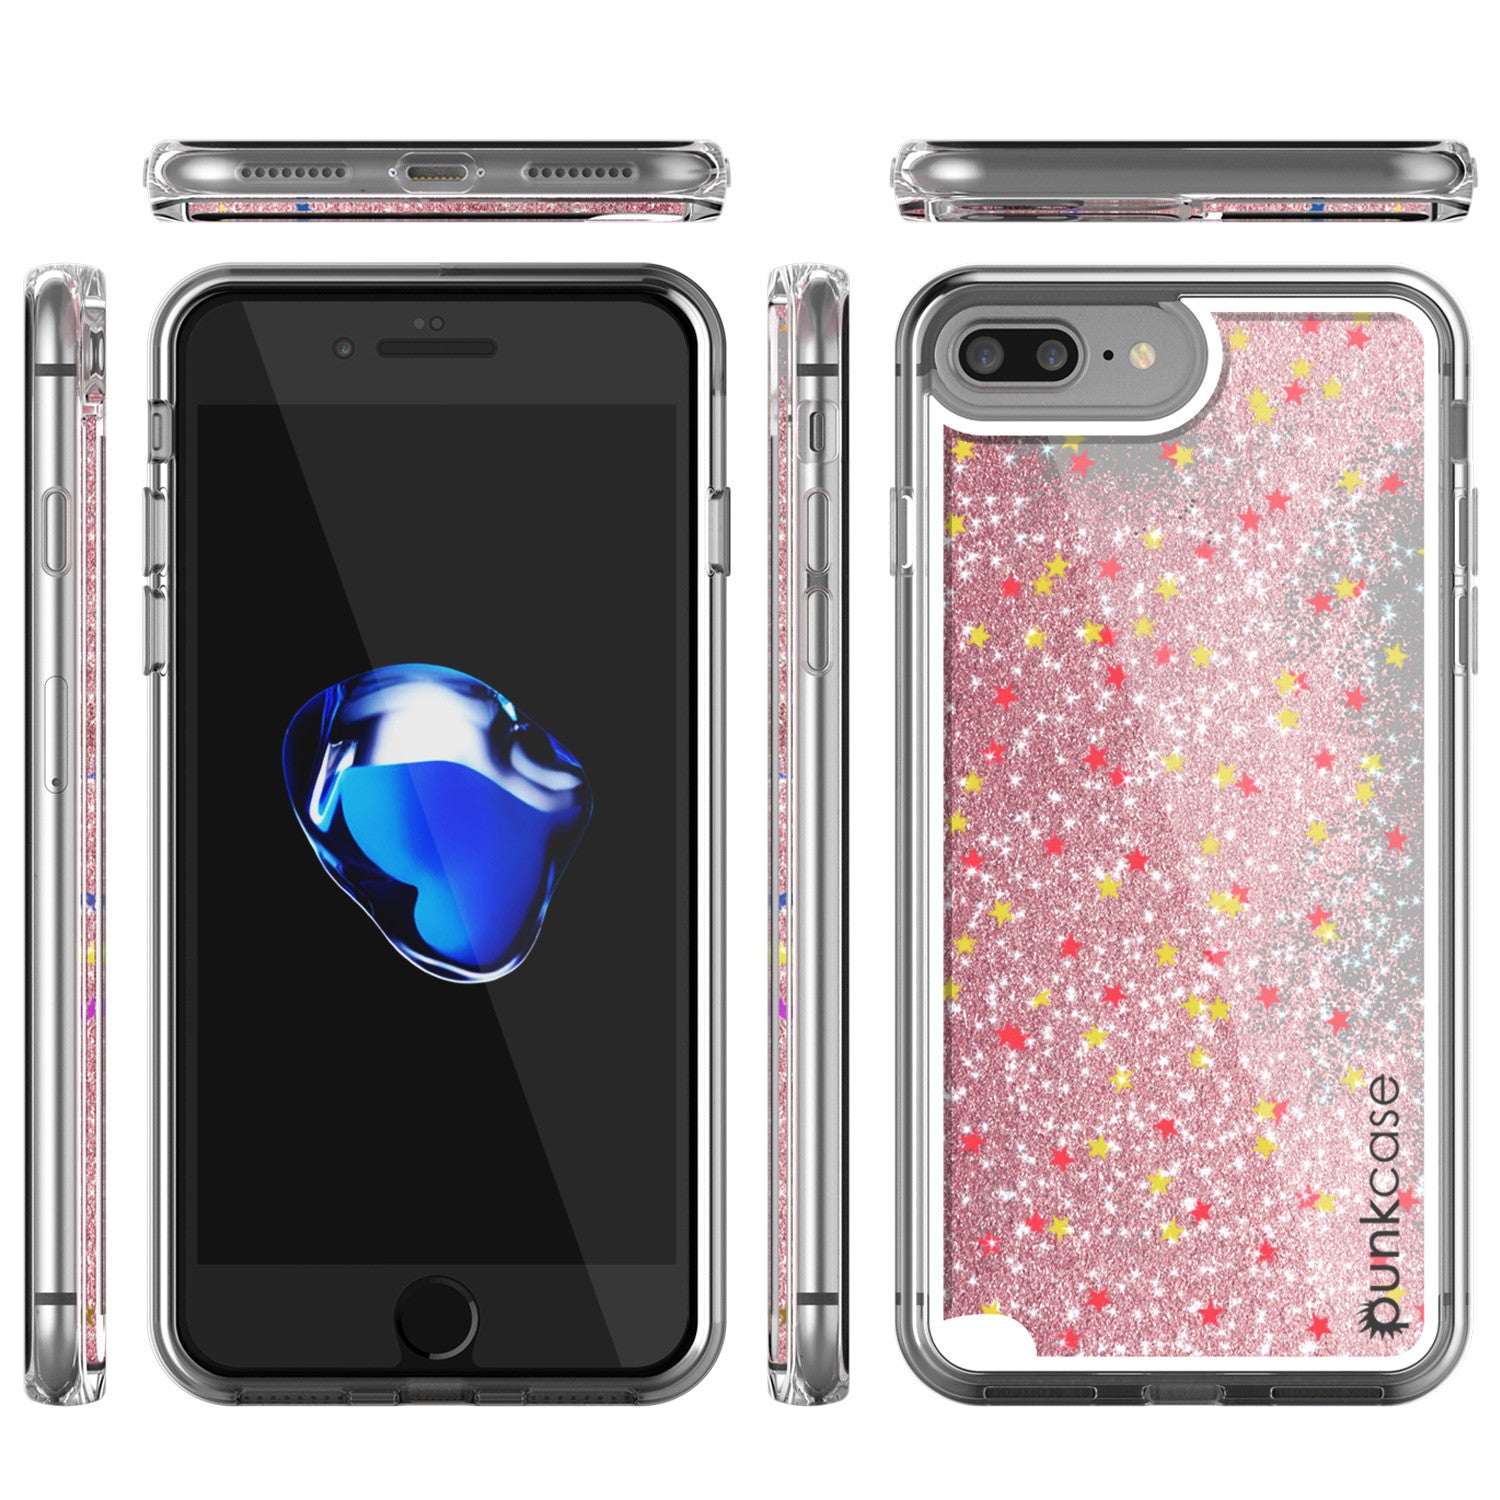 iPhone 7+Plus Case, PunkCase LIQUID Rose Series, Protective Dual Layer Floating Glitter Cover